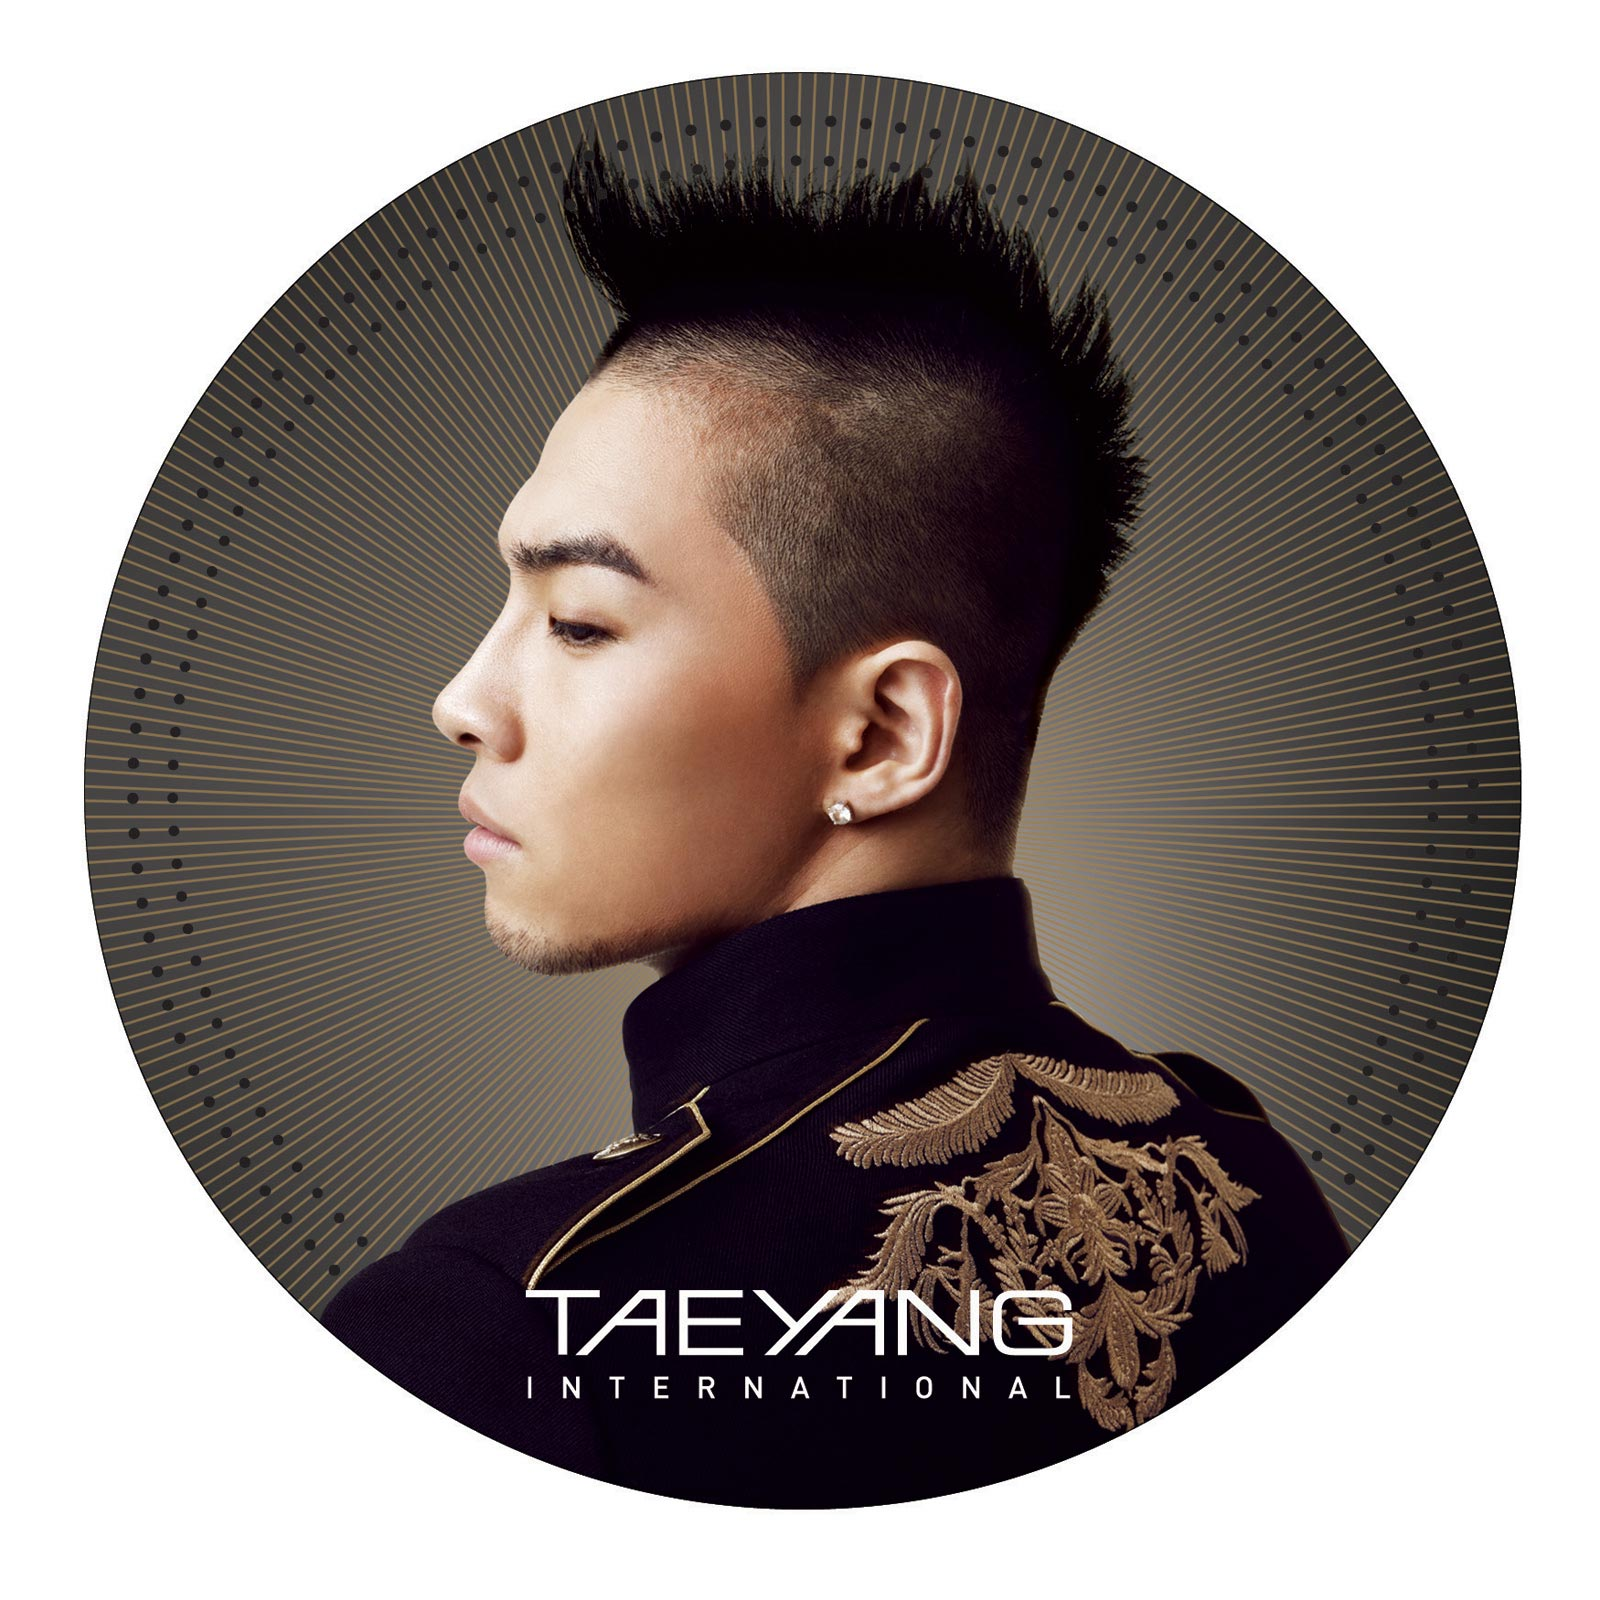 Ww Koreans Lovers Taeyang Solar Internasional Album